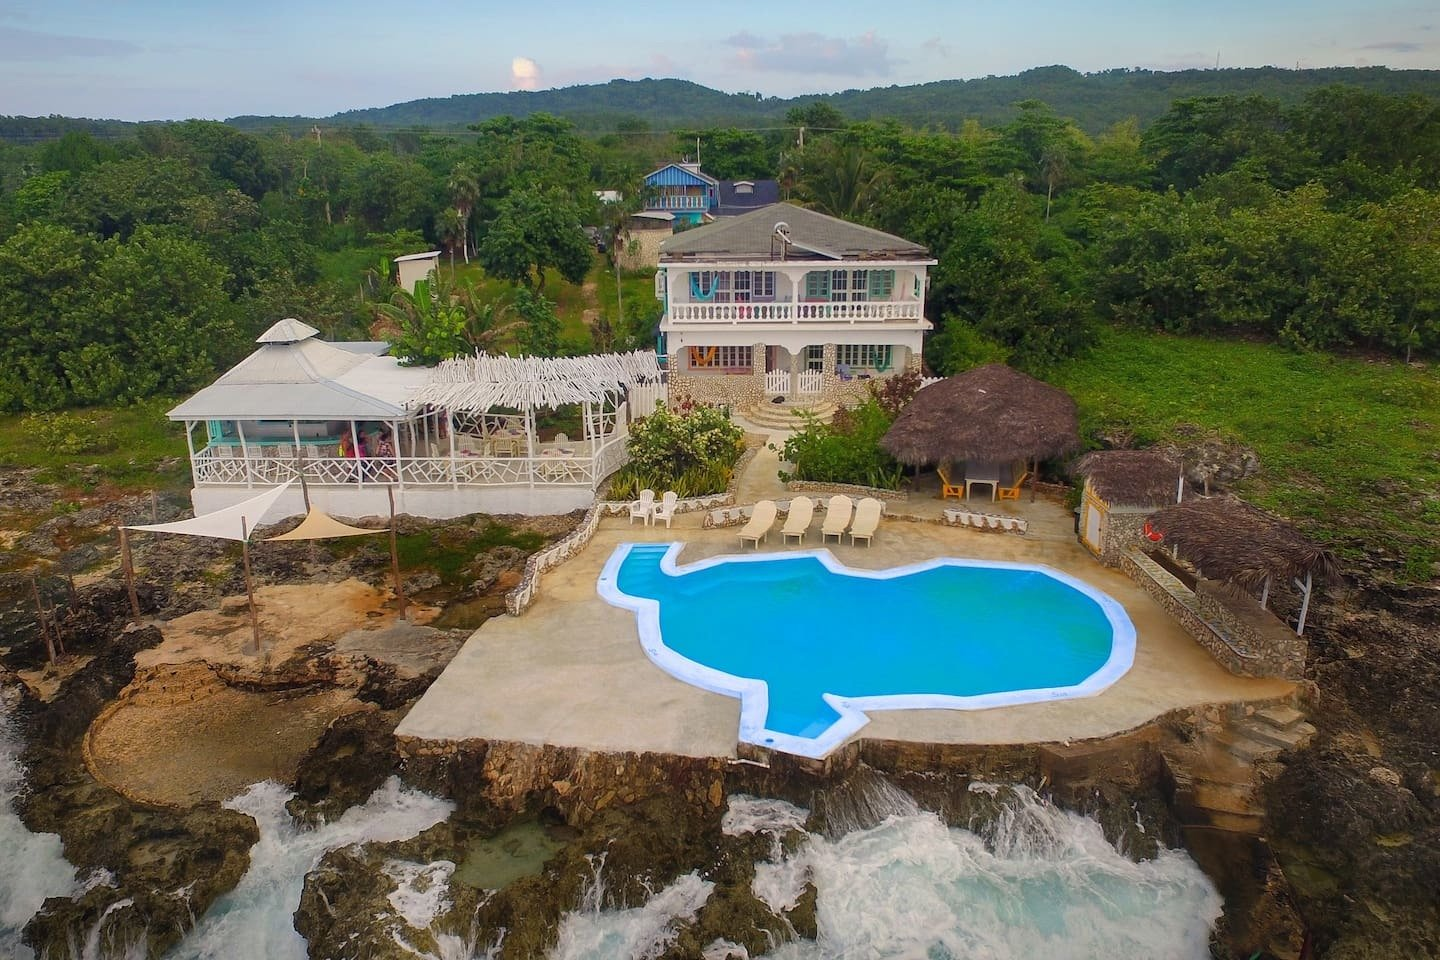 Somewhere West villa in Negril, Jamaica